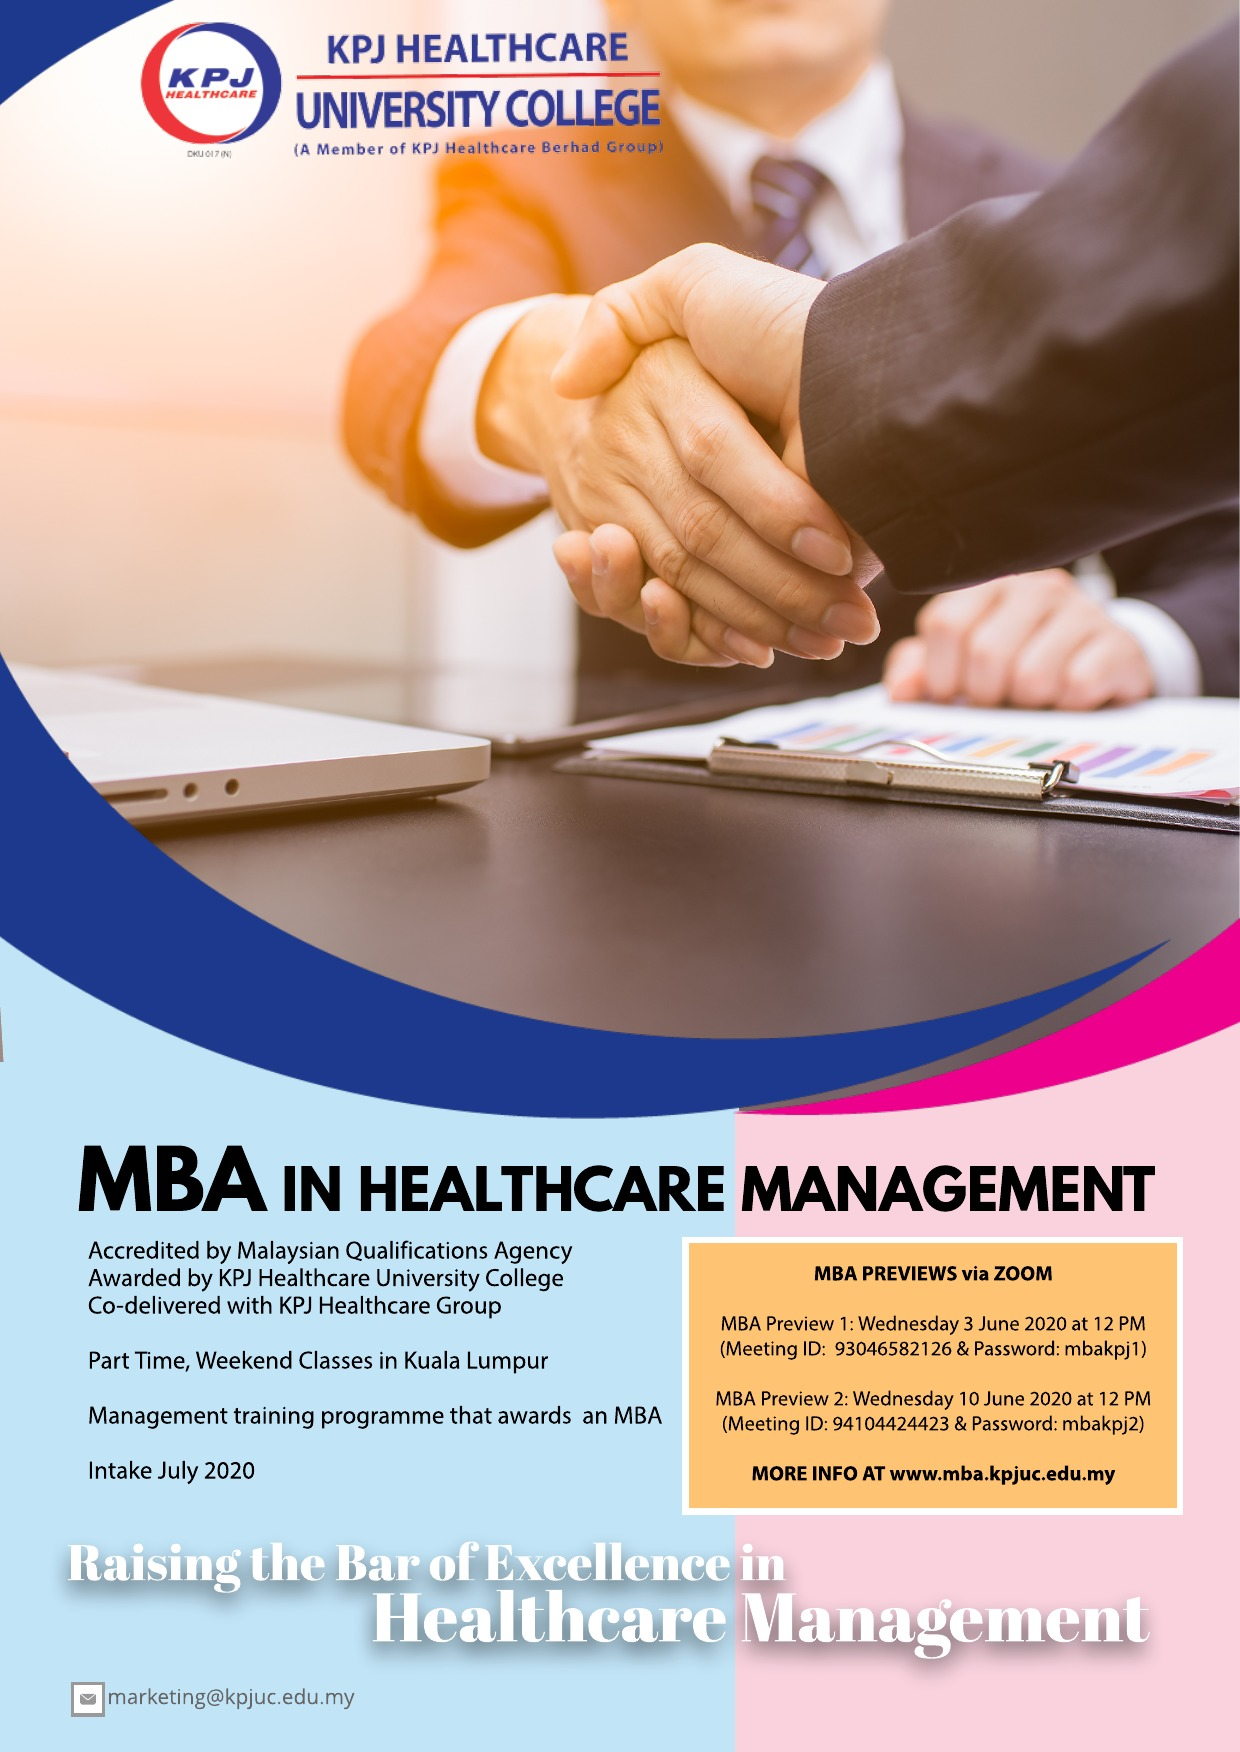 Copy of MBA Preview